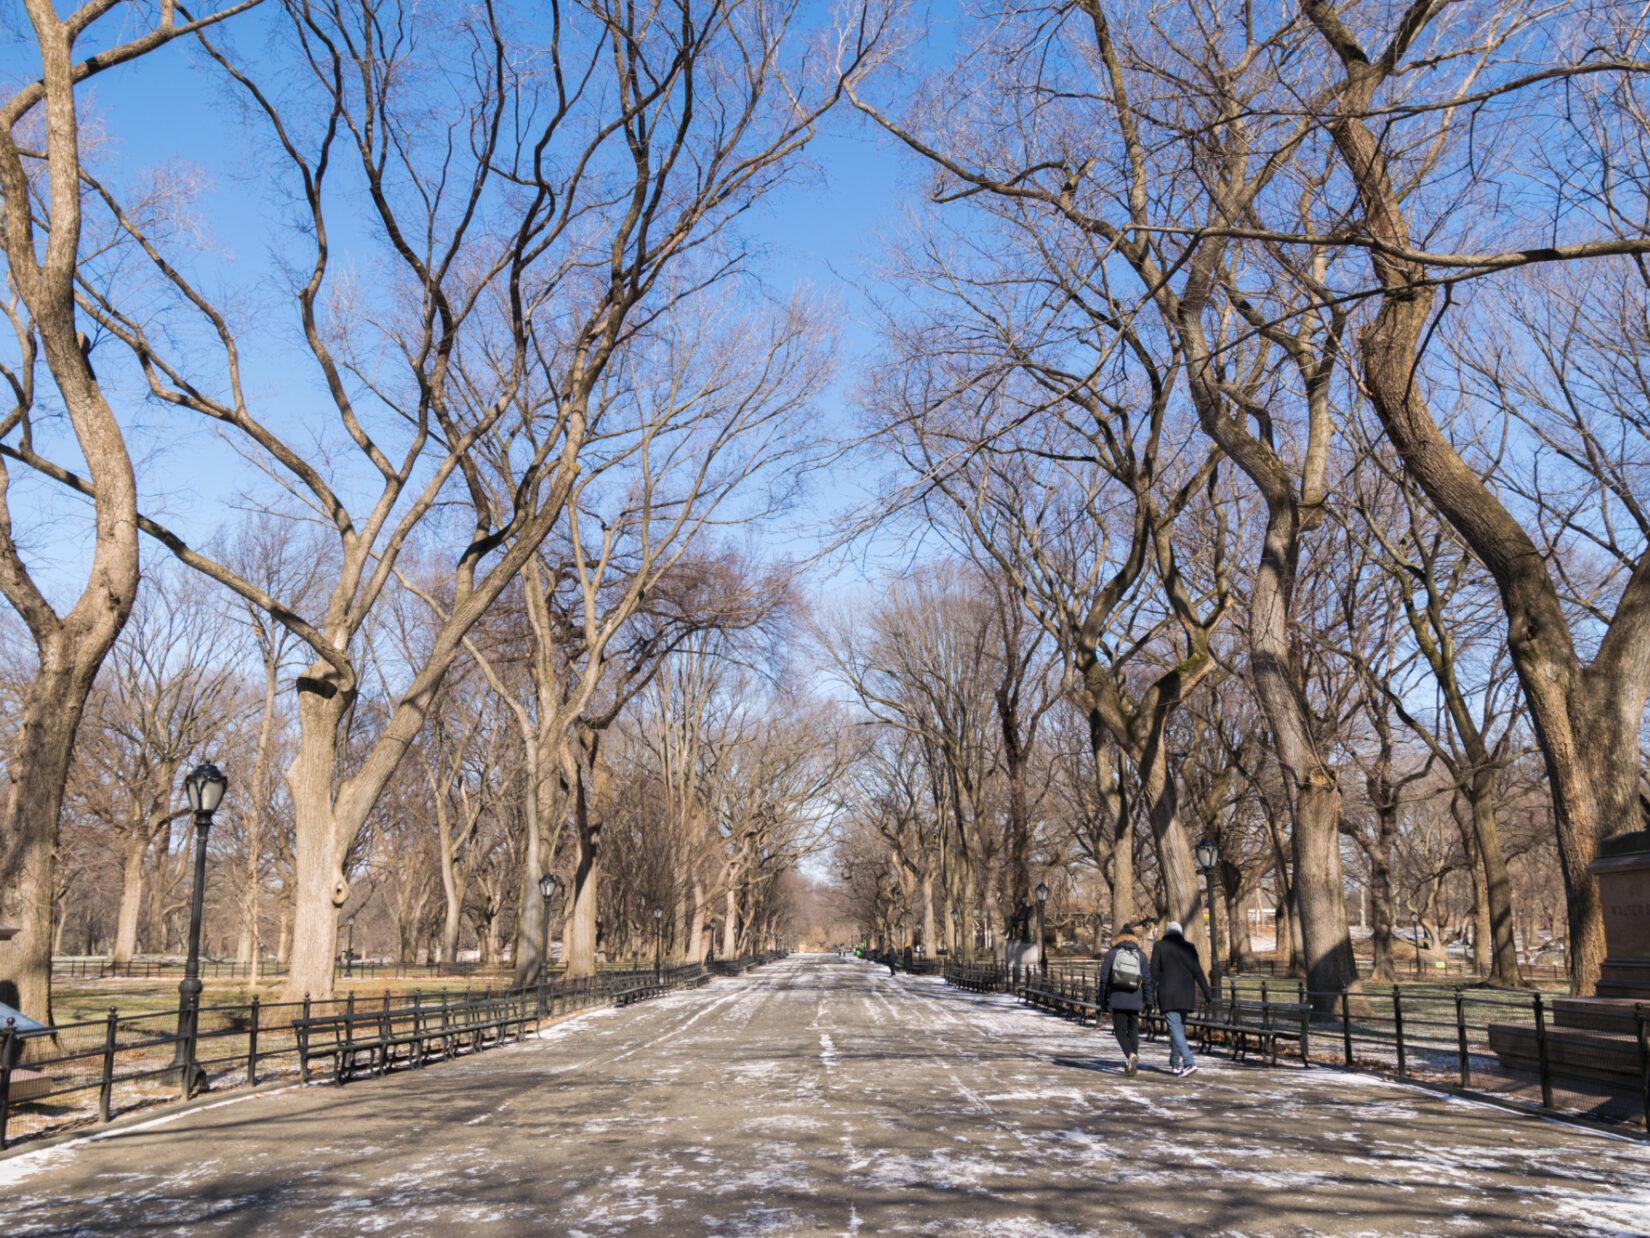 A look down the length of the Mall on a leafless winter day